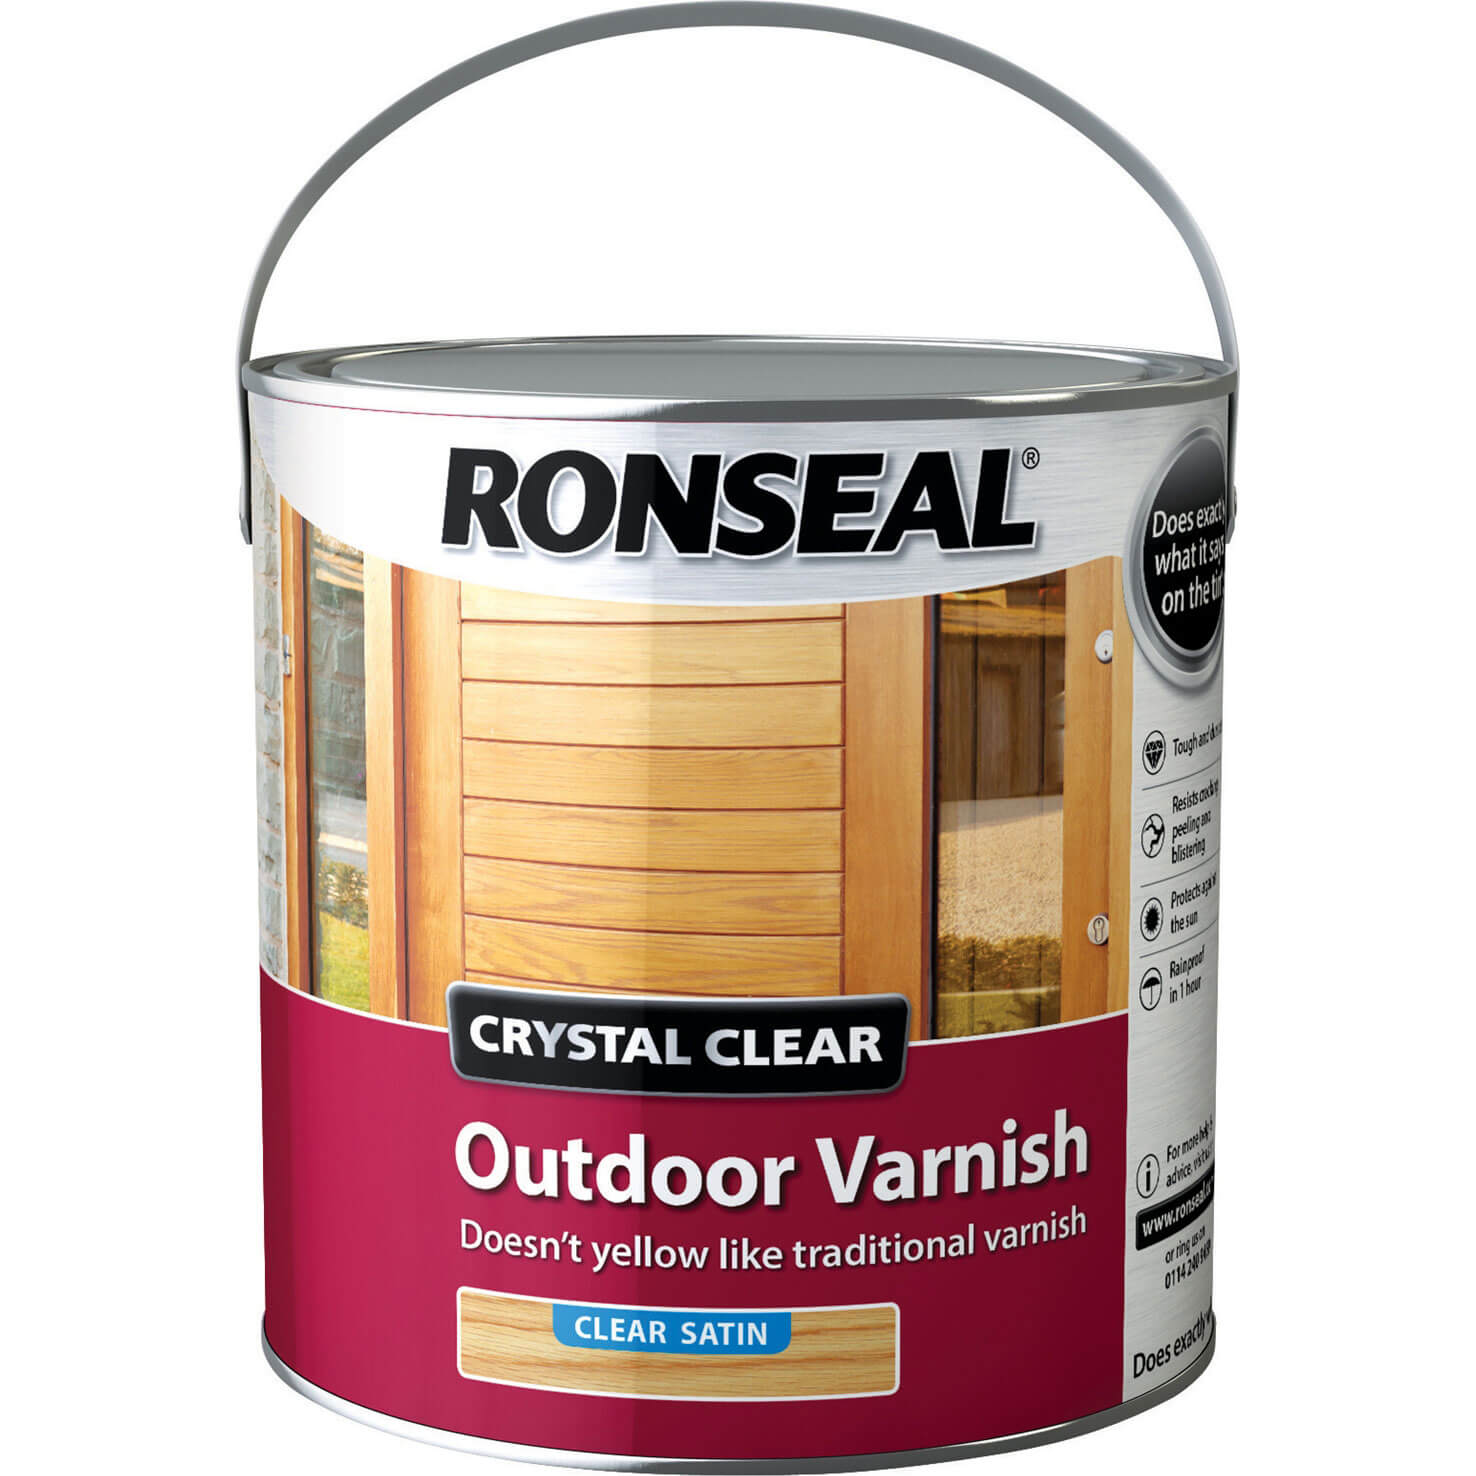 Image of Ronseal Crystal Clear Outdoor Varnish Satin 2.5l